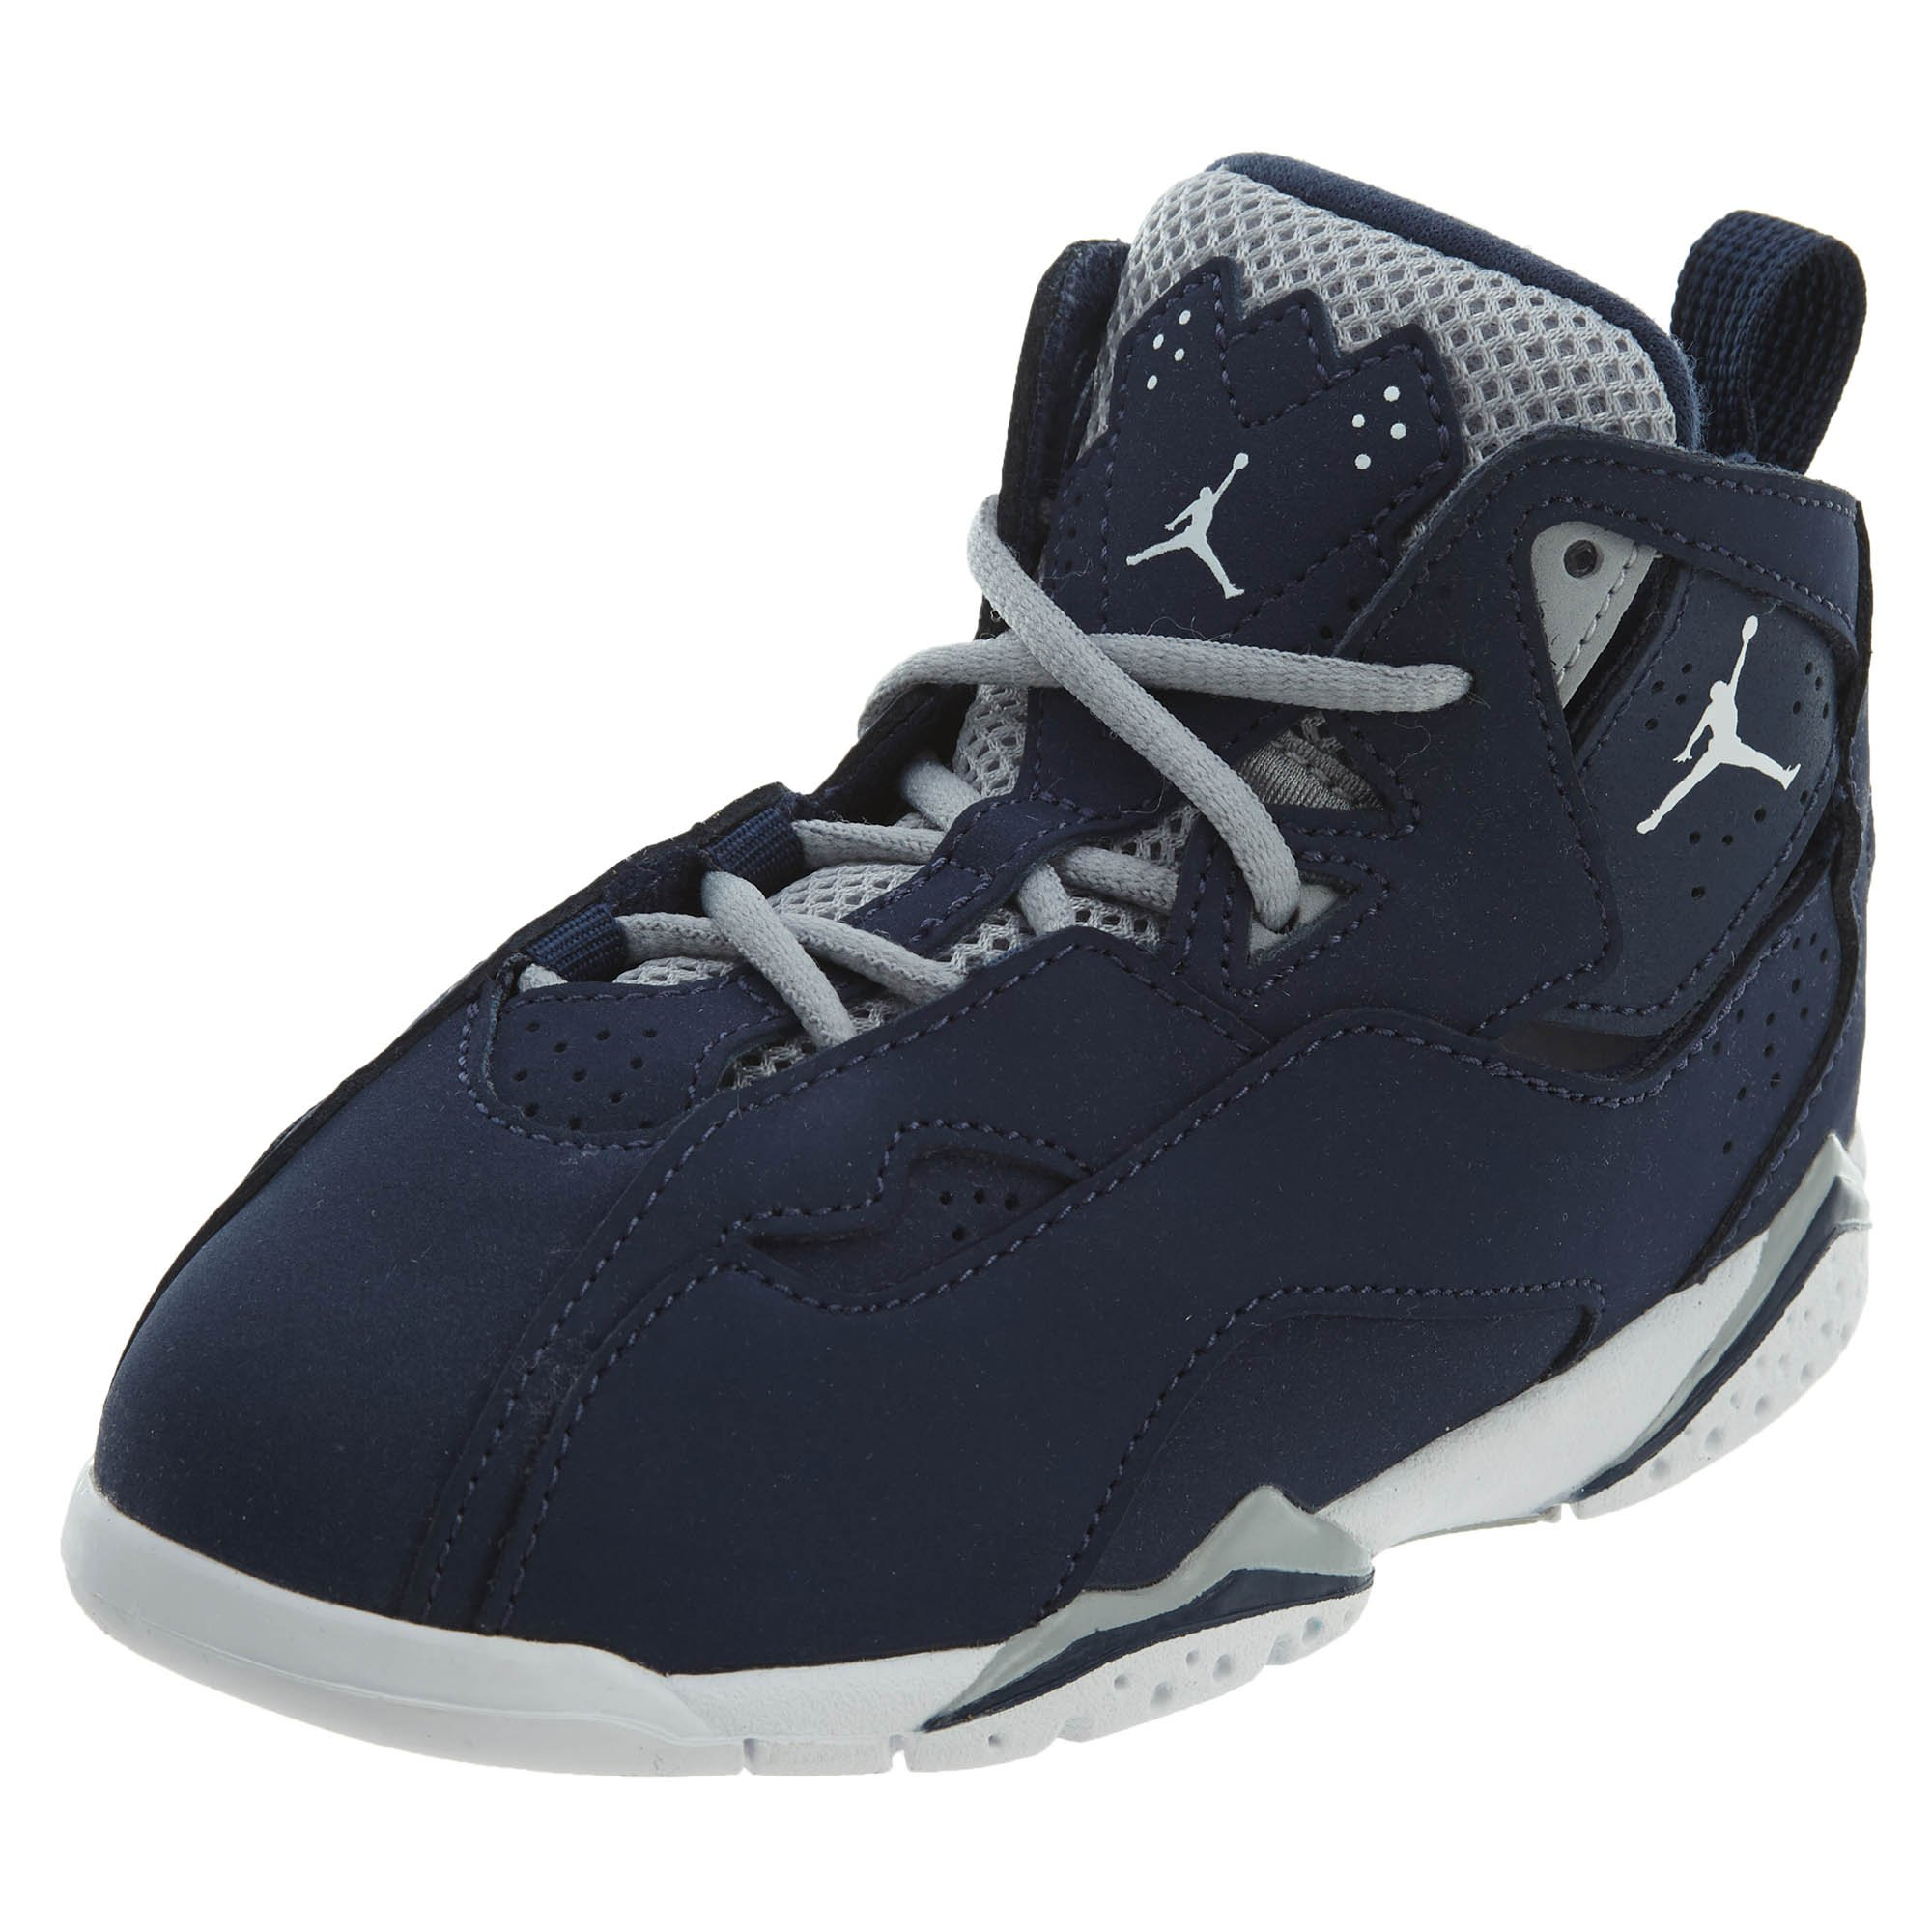 NIKE Jordan True Flight BT Boys Fashion-Sneakers 343797-404_9C - Midnight Navy/White-Wolf Grey